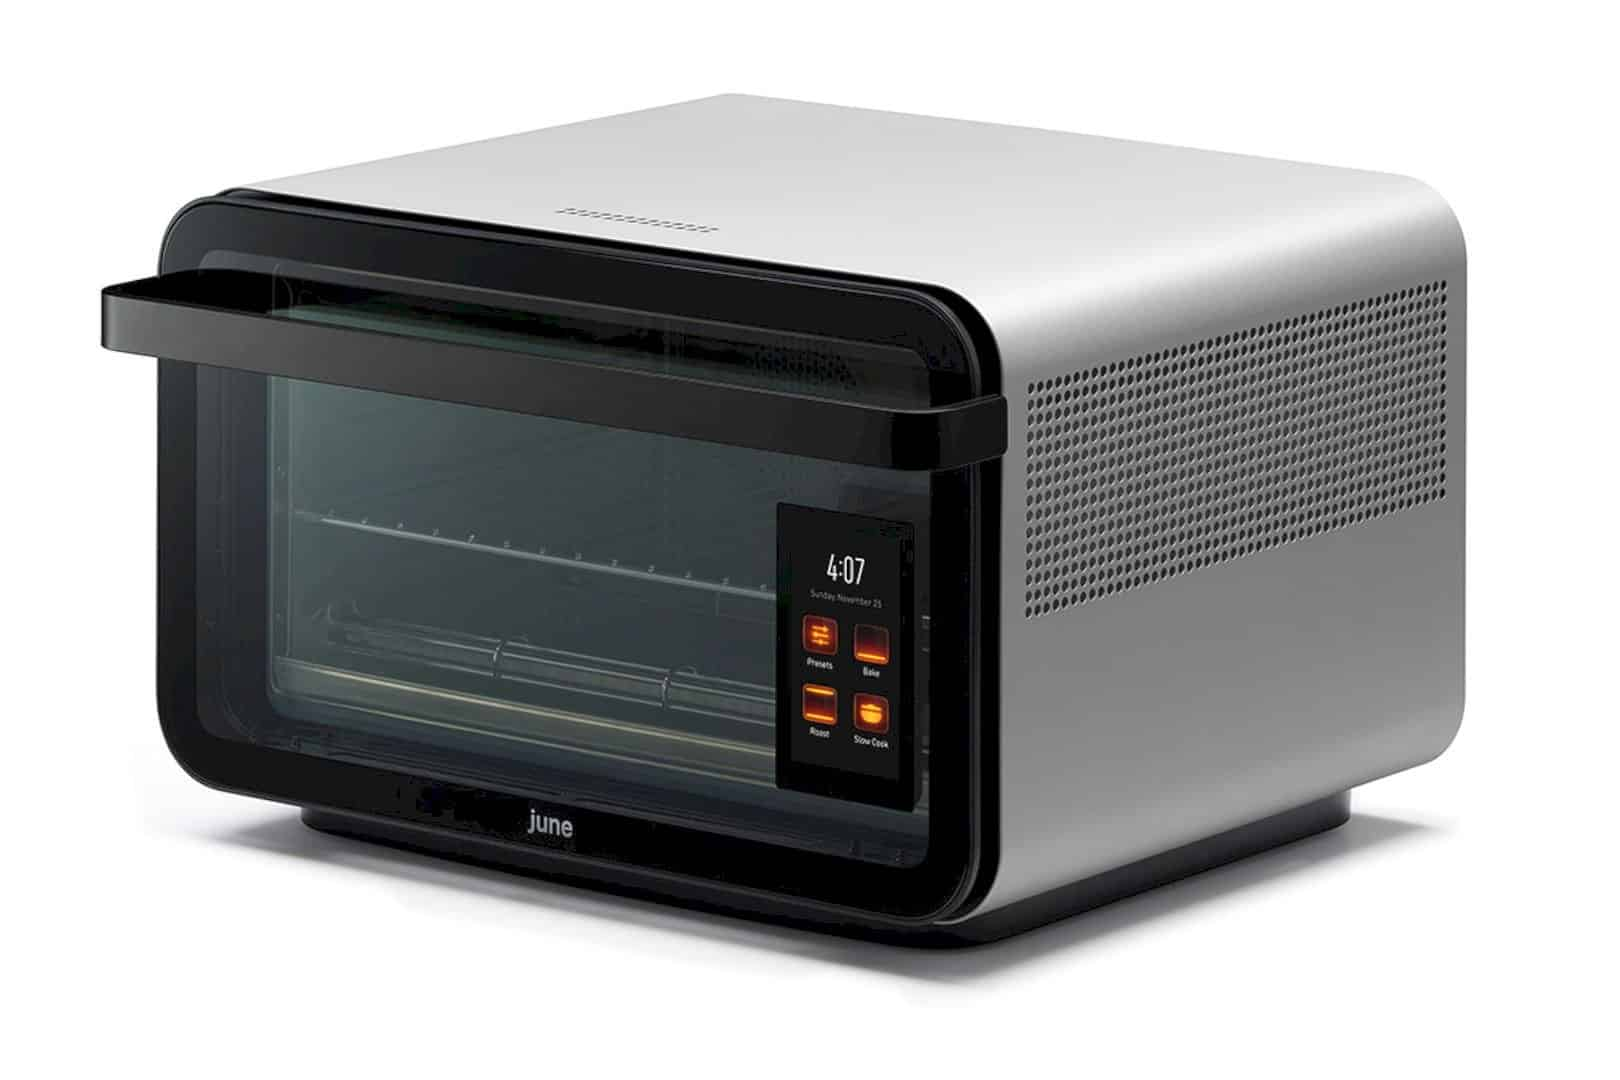 The June Oven: The Best Oven for A Success in Cooking